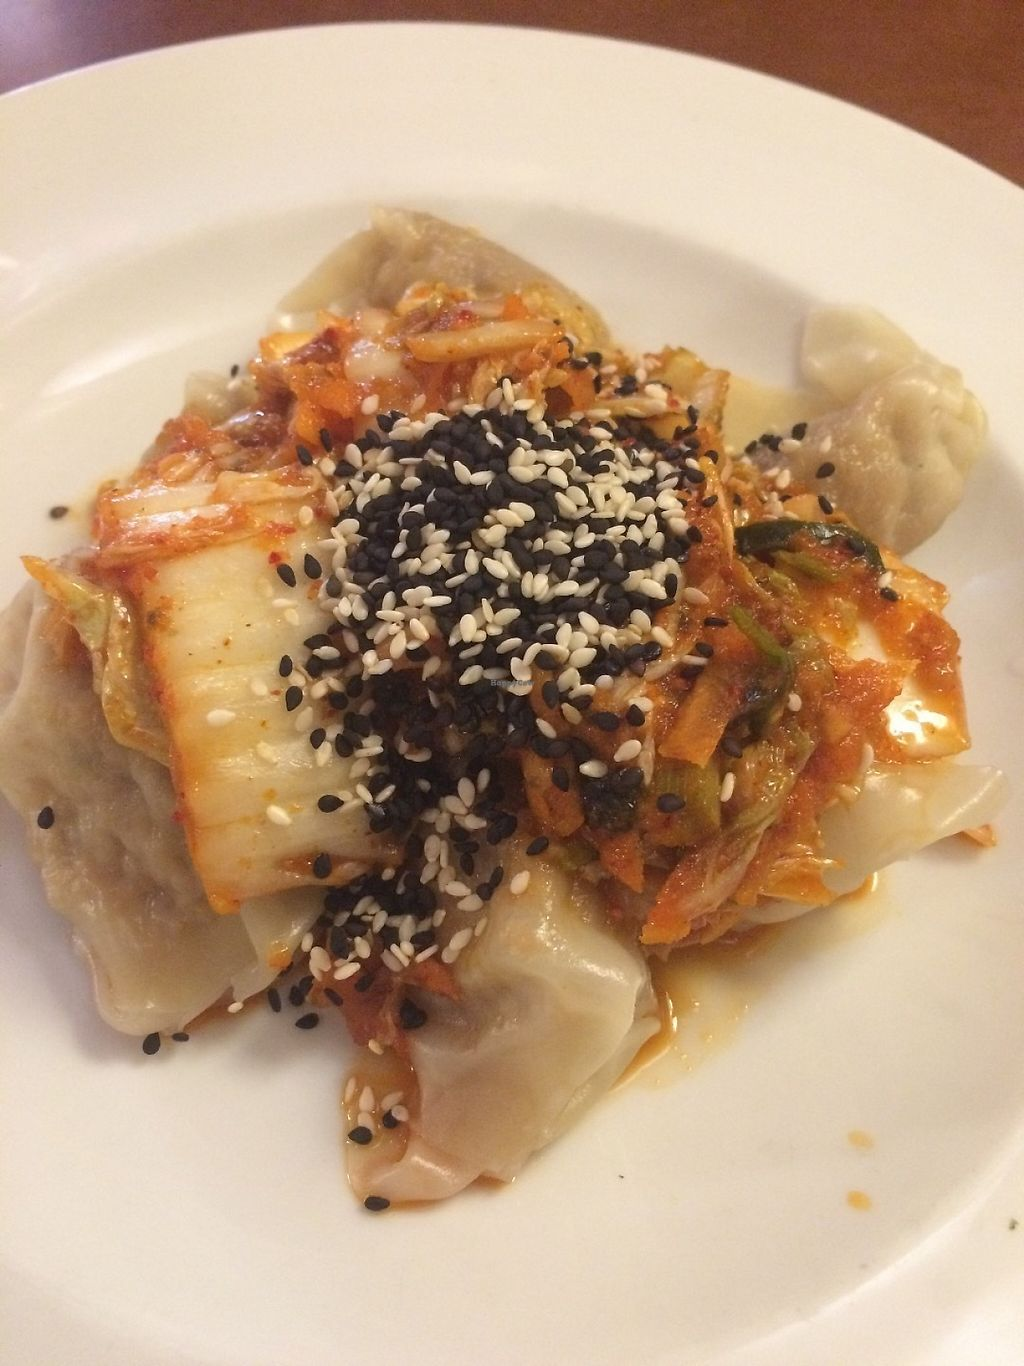 """Photo of Candle 79  by <a href=""""/members/profile/MyGreenTongue"""">MyGreenTongue</a> <br/>Steamed dumplings <br/> May 24, 2017  - <a href='/contact/abuse/image/4849/262152'>Report</a>"""